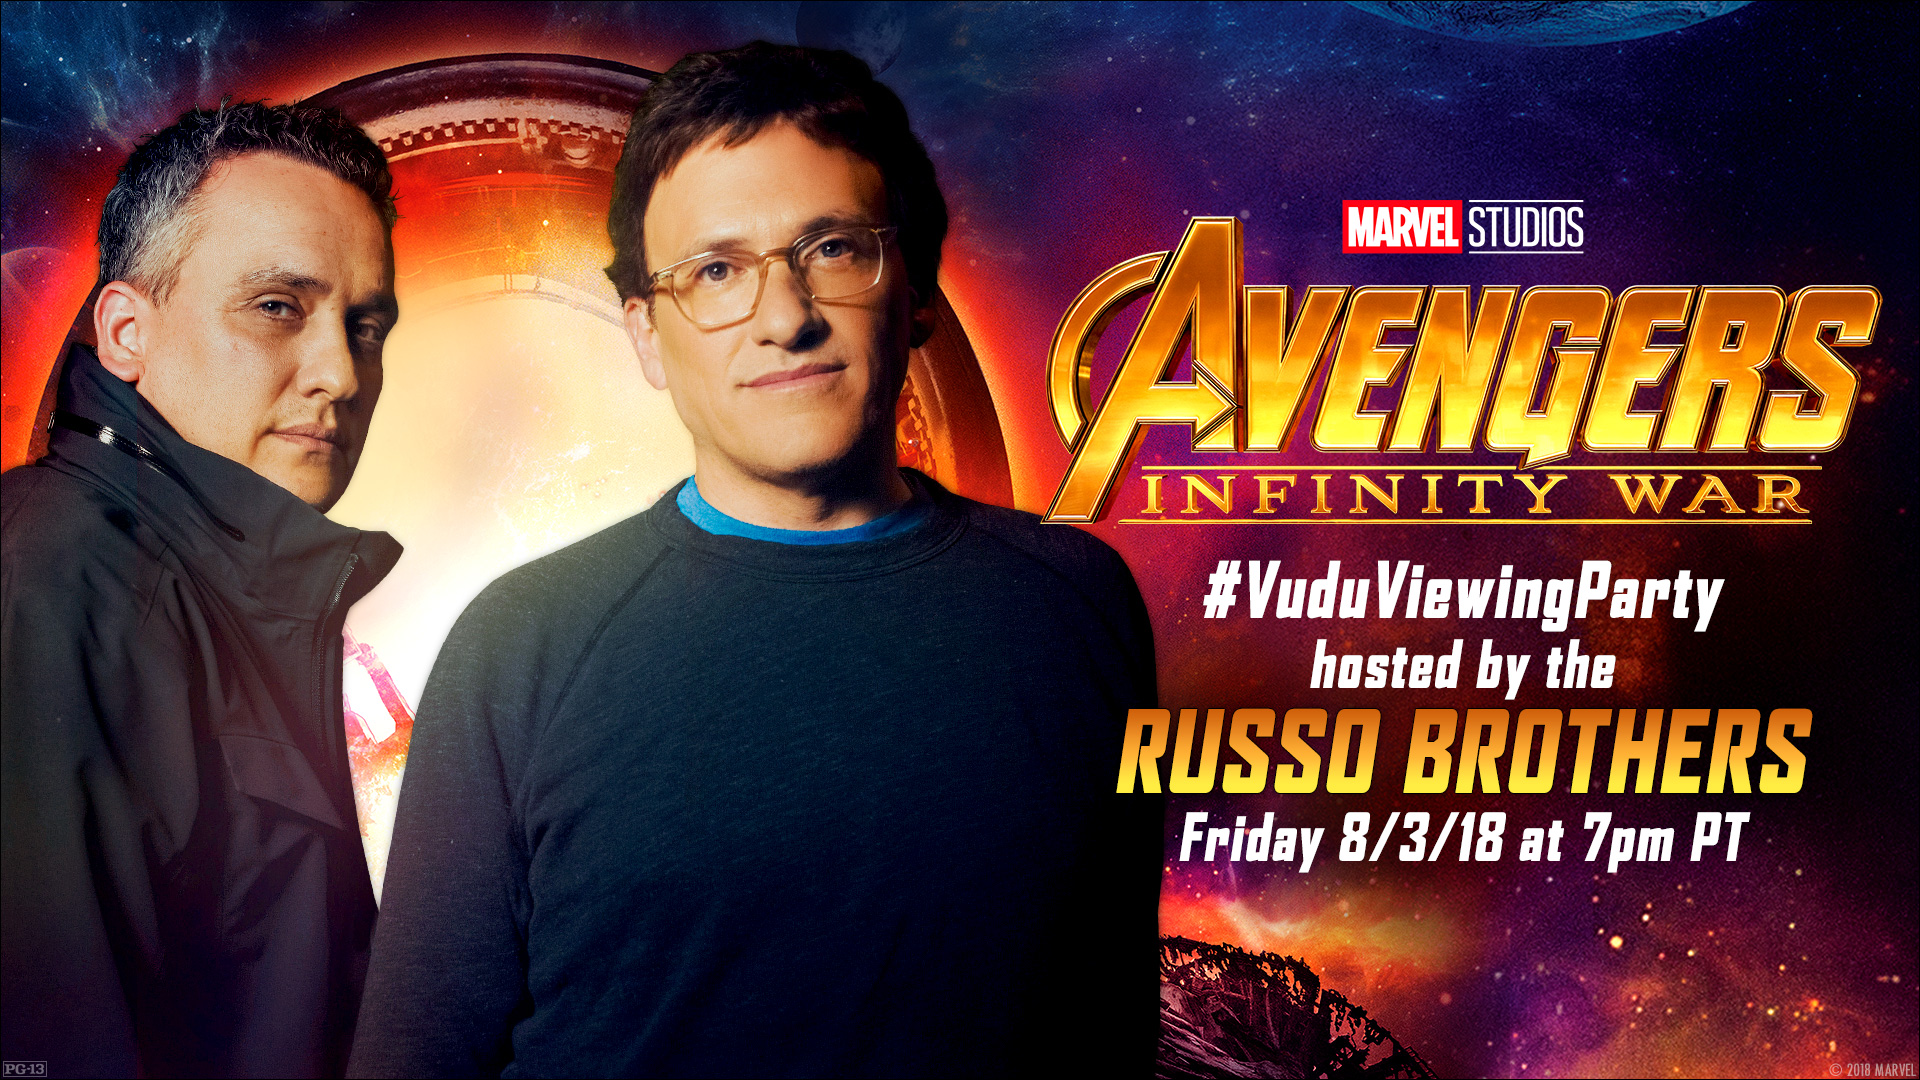 The Russo Brothers to host 'Avengers: Infinity War' Vudu